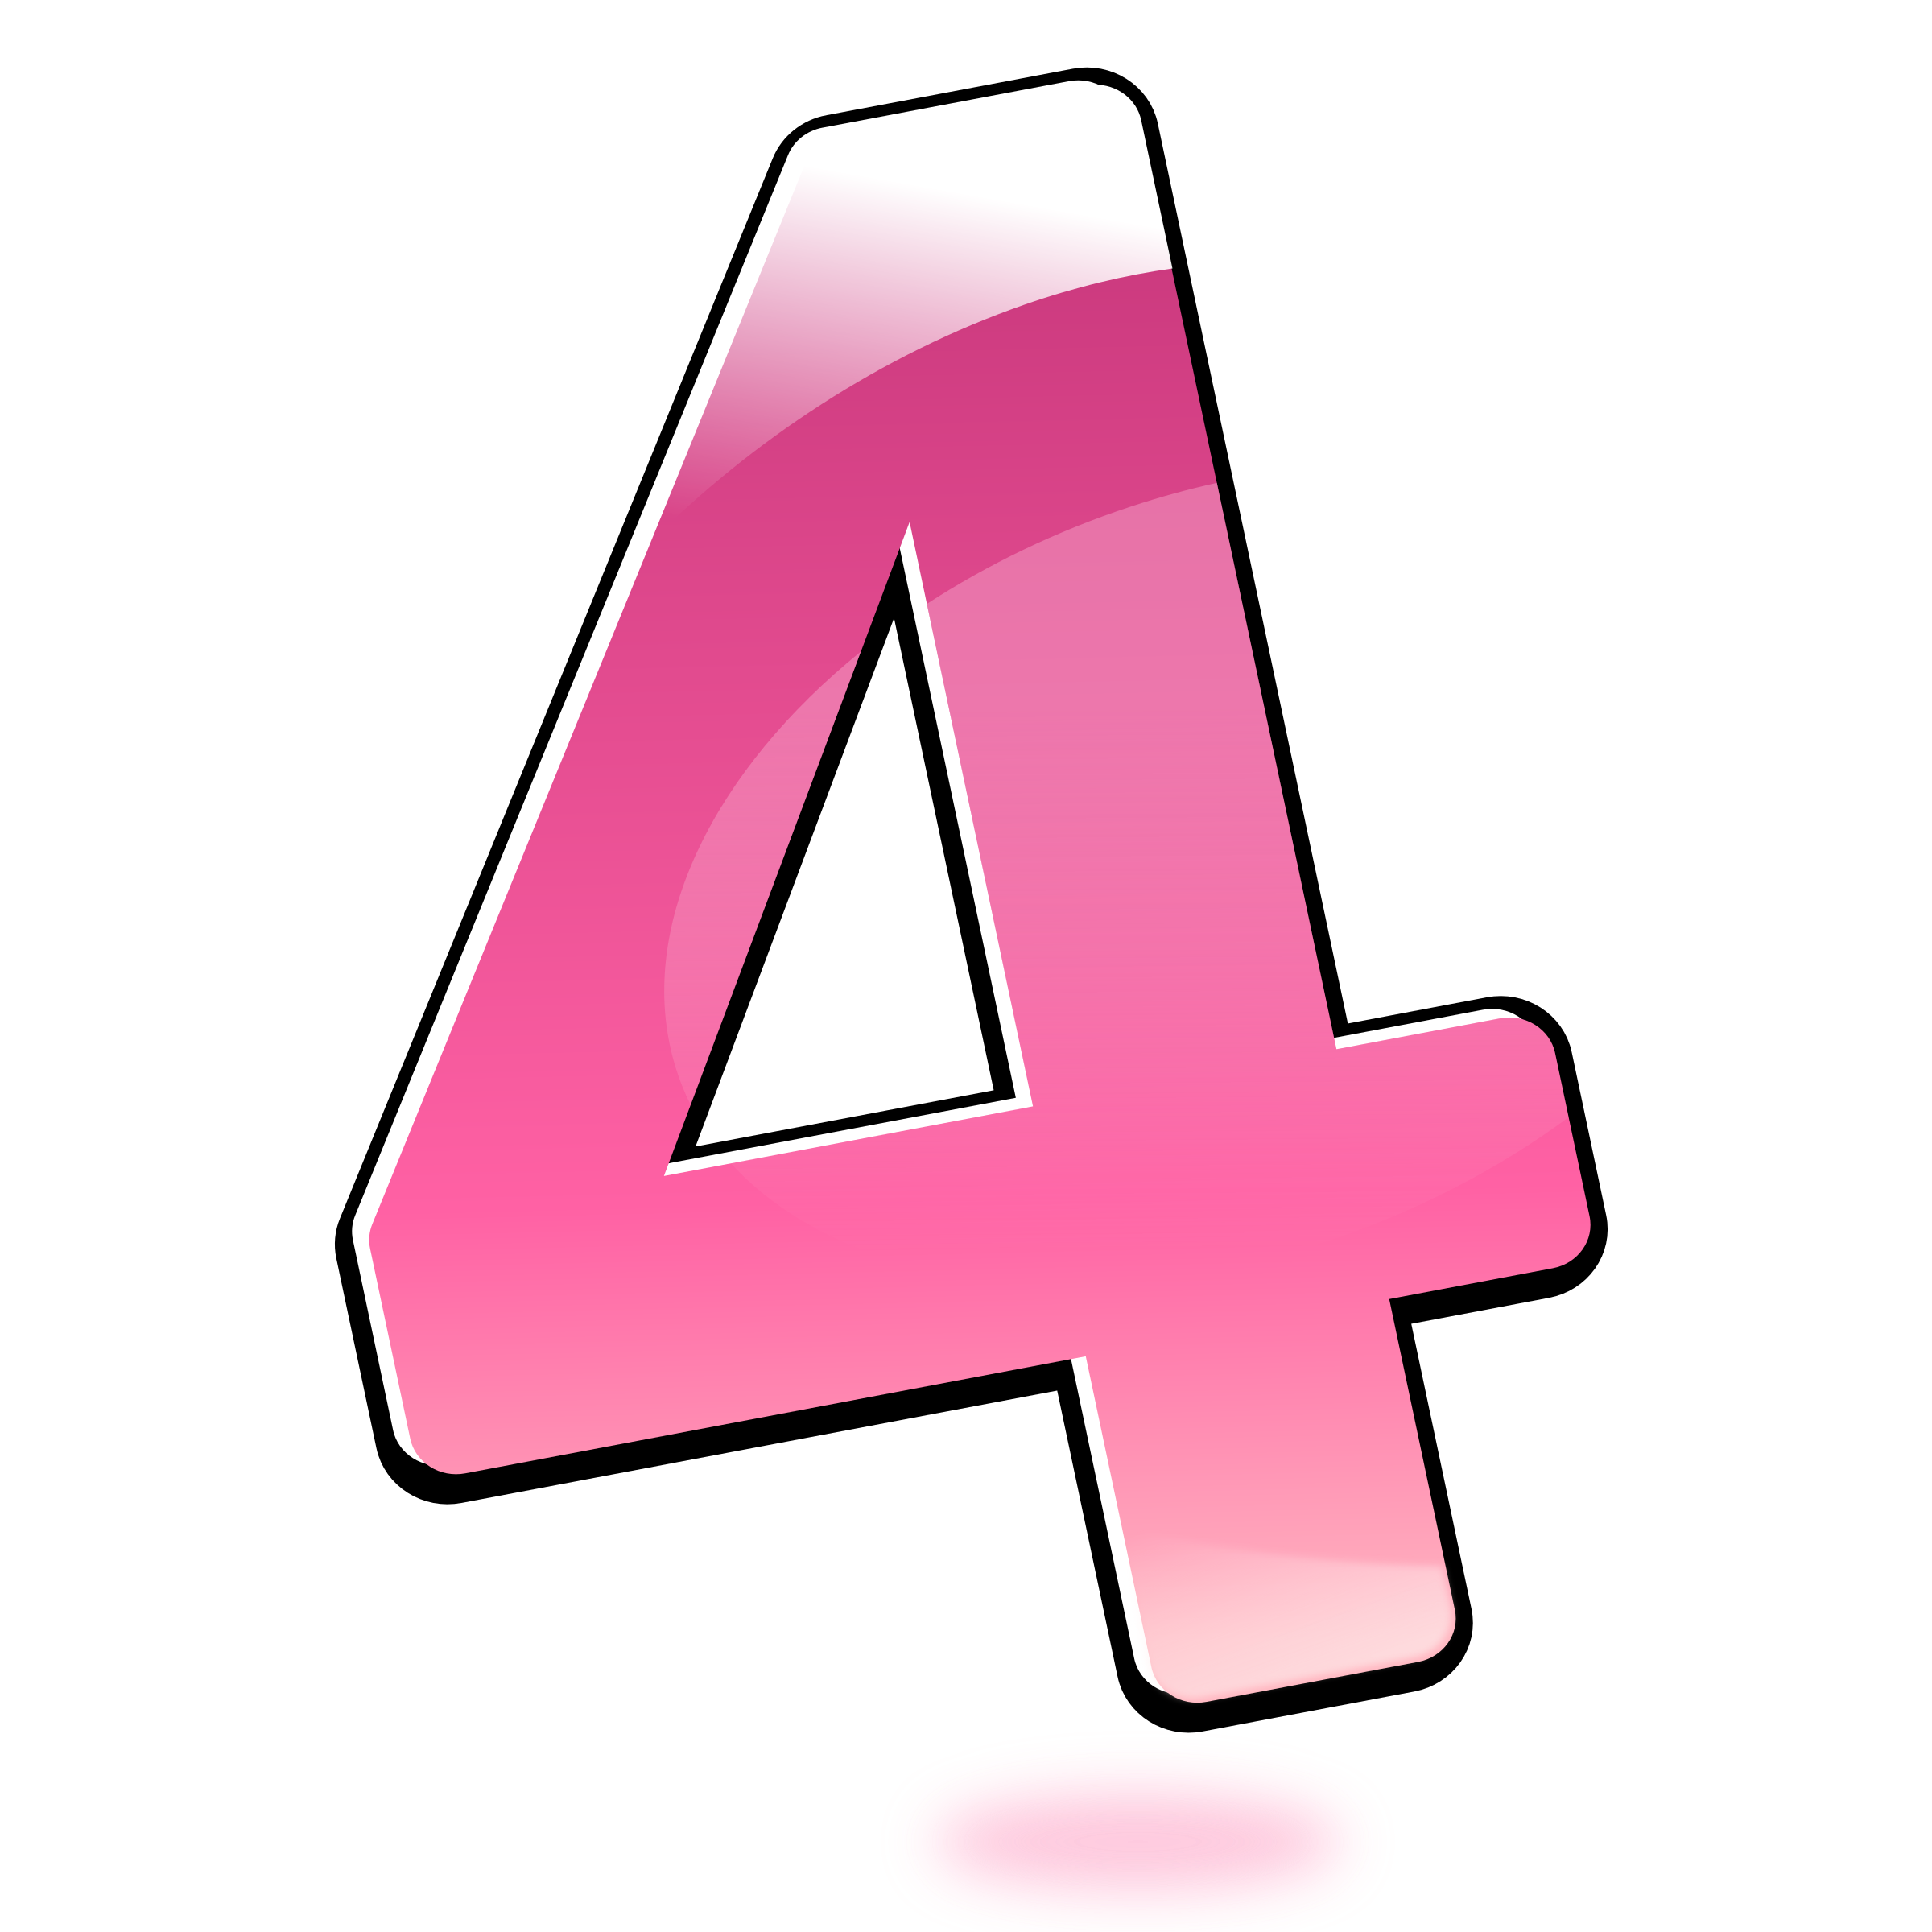 4 clipart four. Glossy number big image